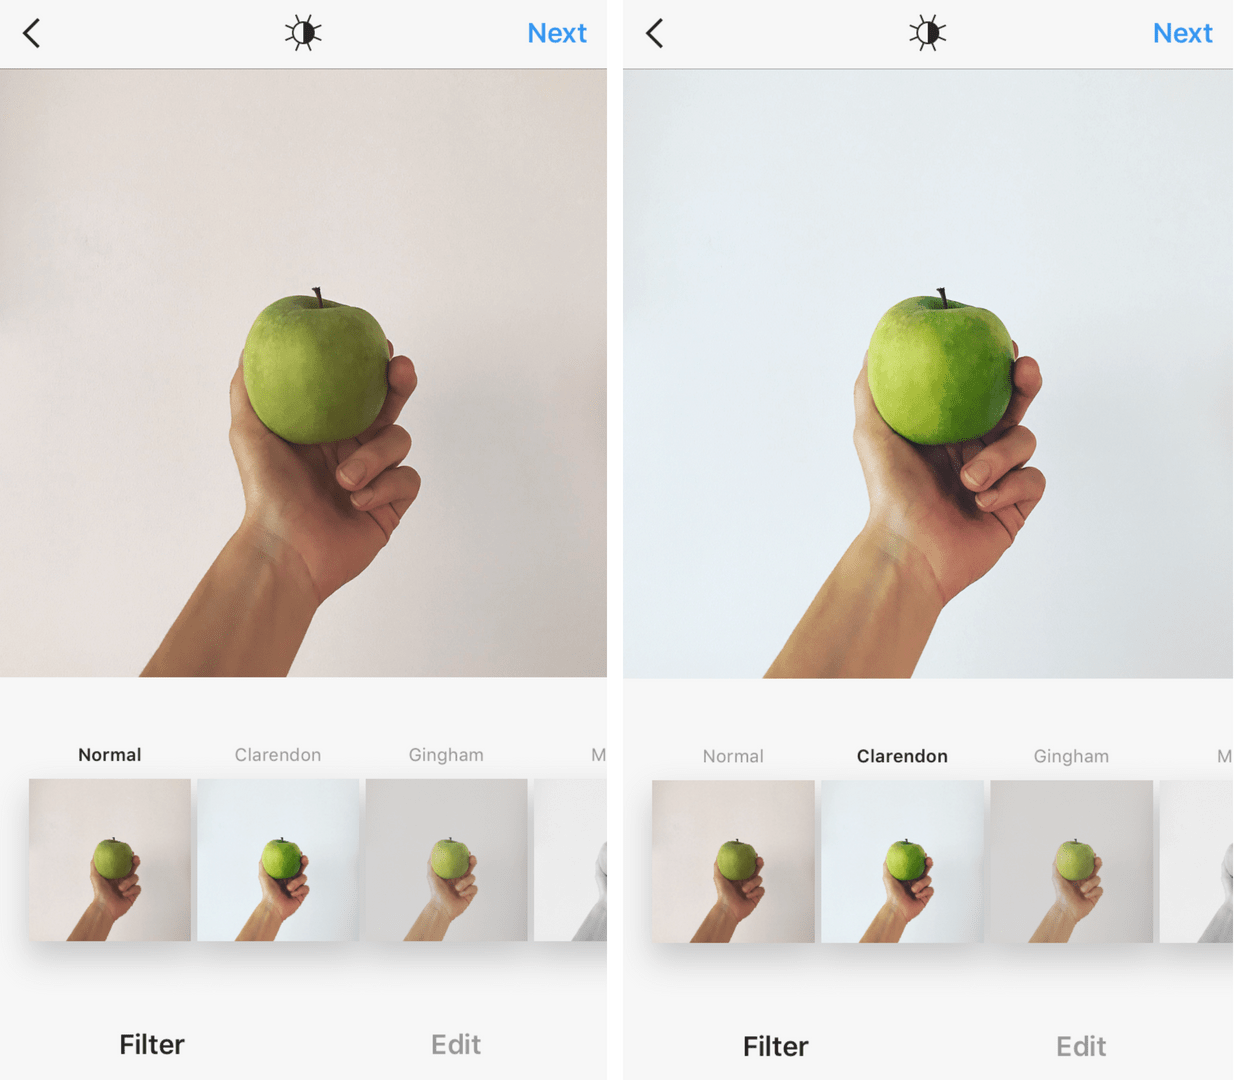 The 10 Most Used Instagram Filters (According to Iconosquare